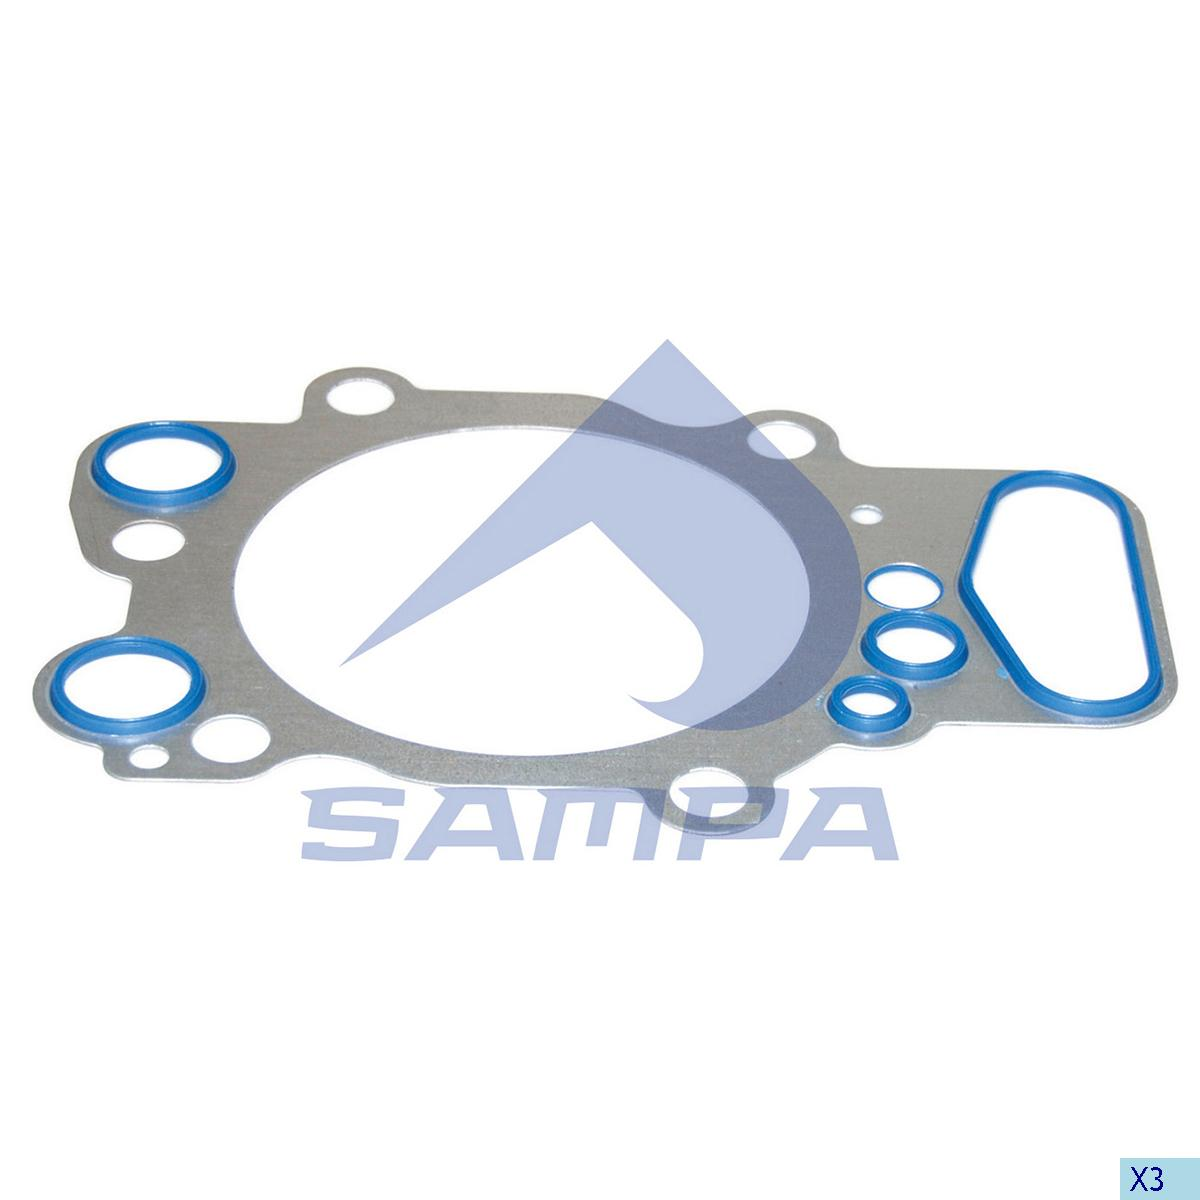 Gasket, Cylinder Head, Scania, Engine